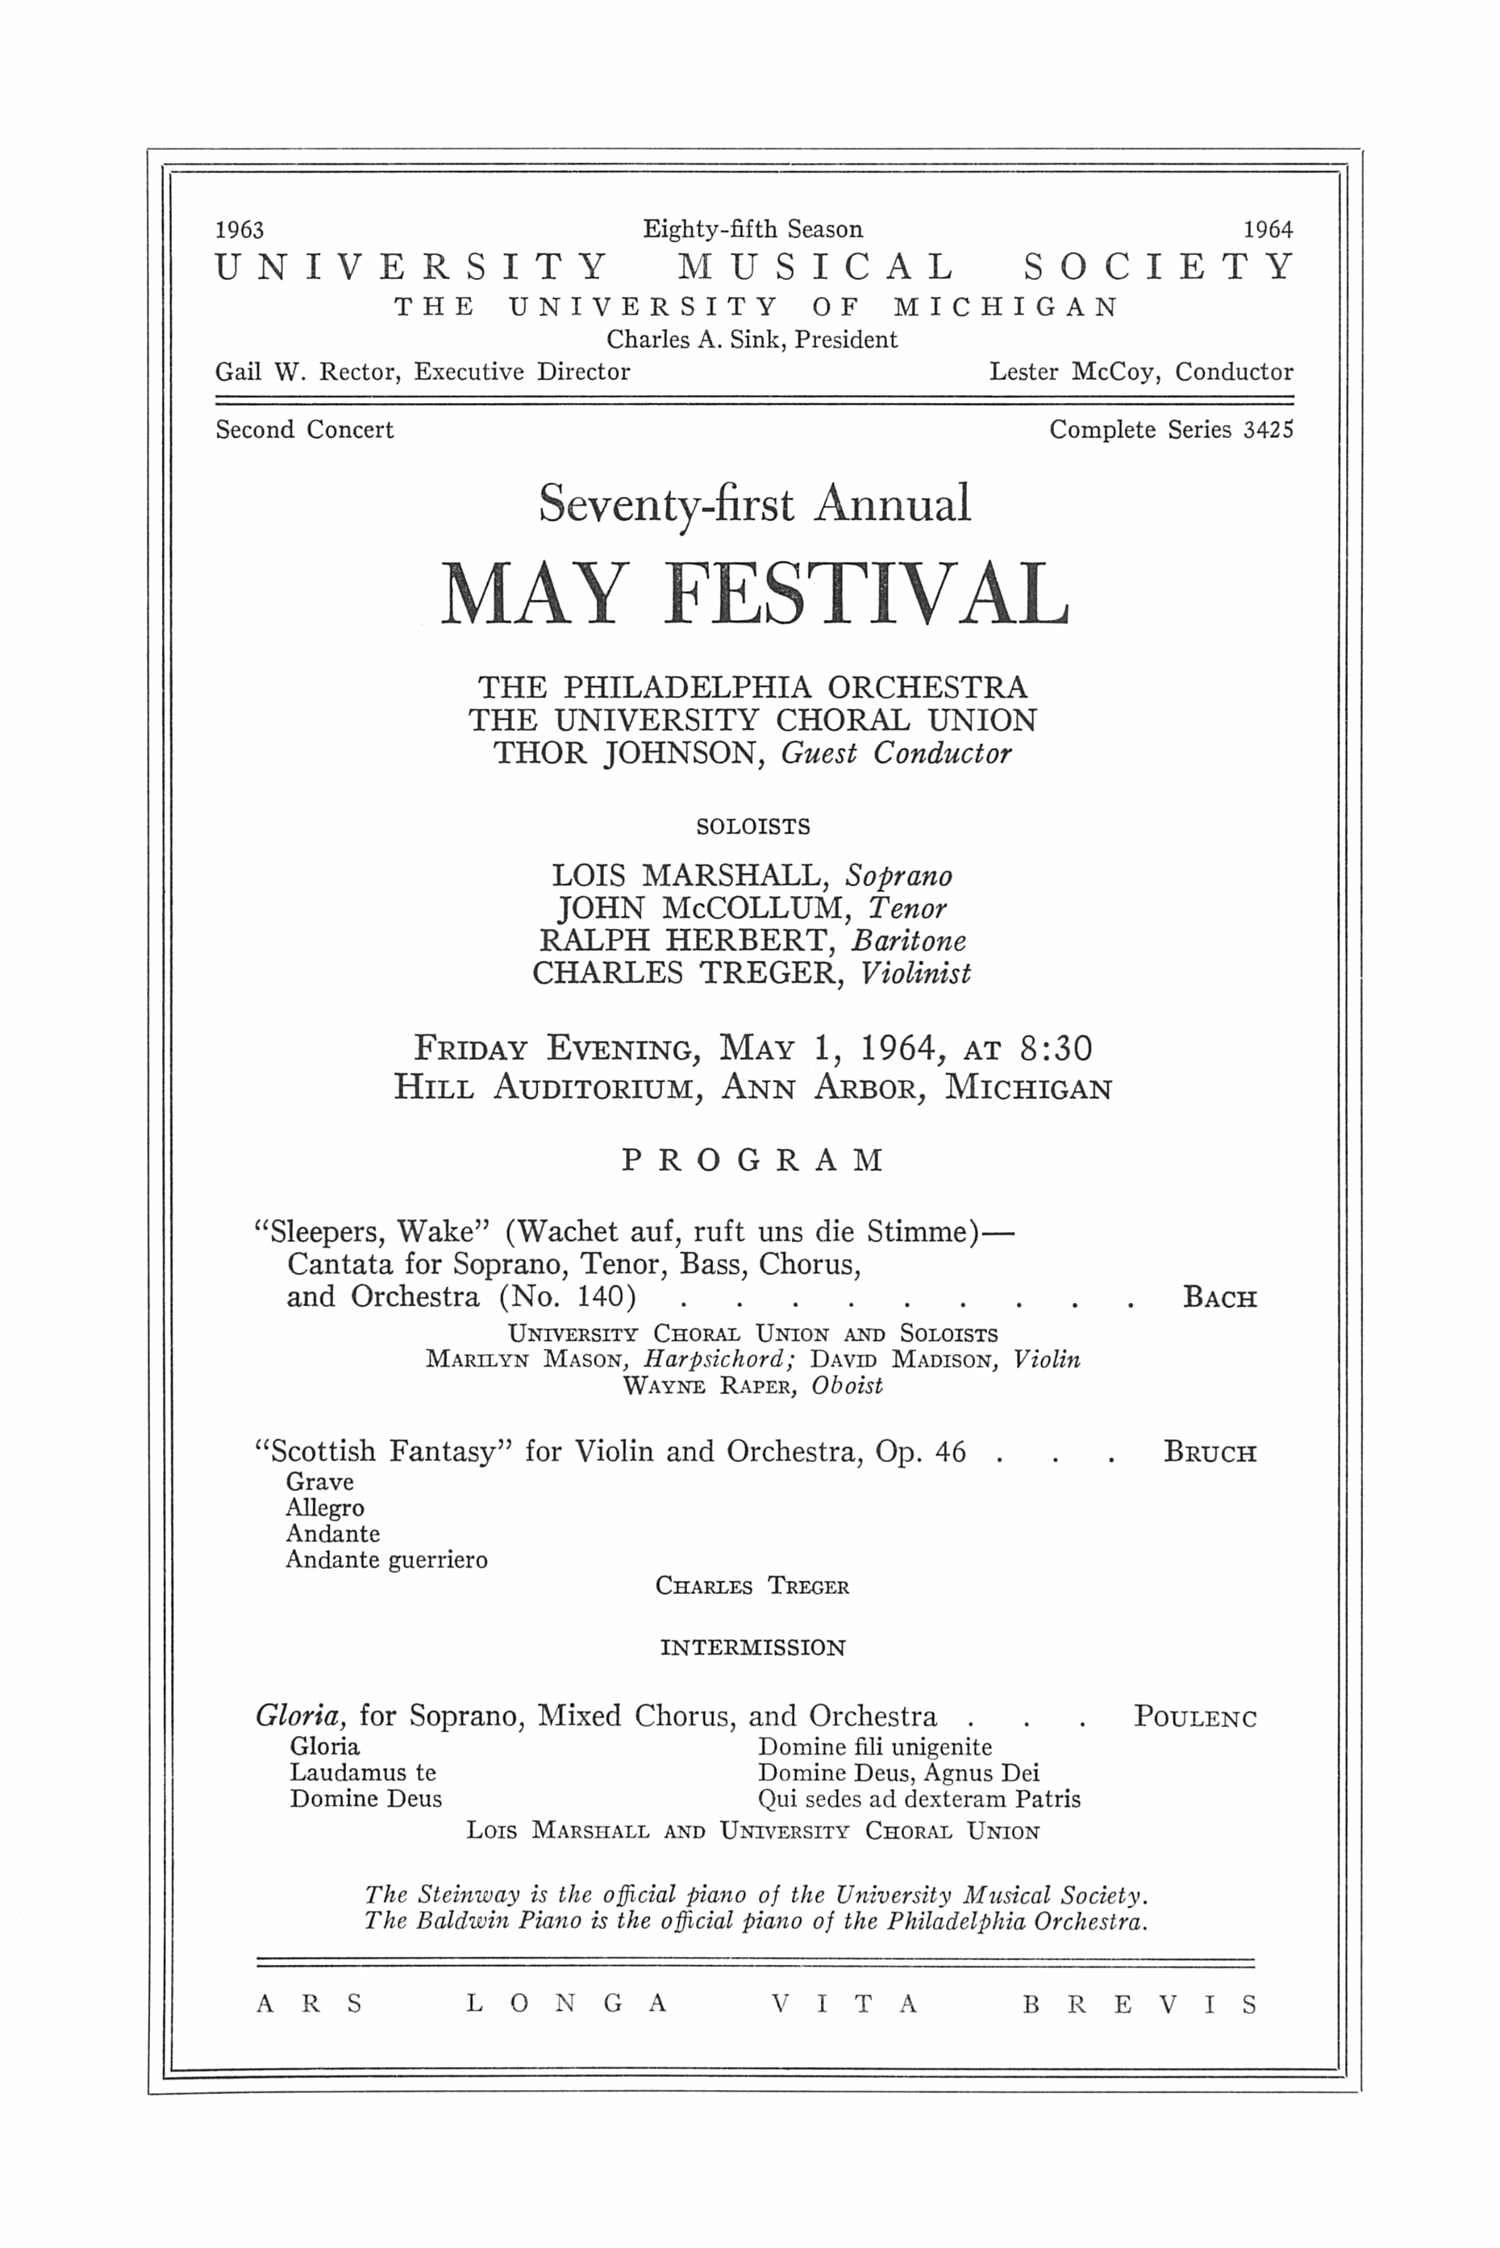 UMS Concert Program, May 1, 1964: Seventy-first Annual May Festival -- The Philadelphia Orchestra image